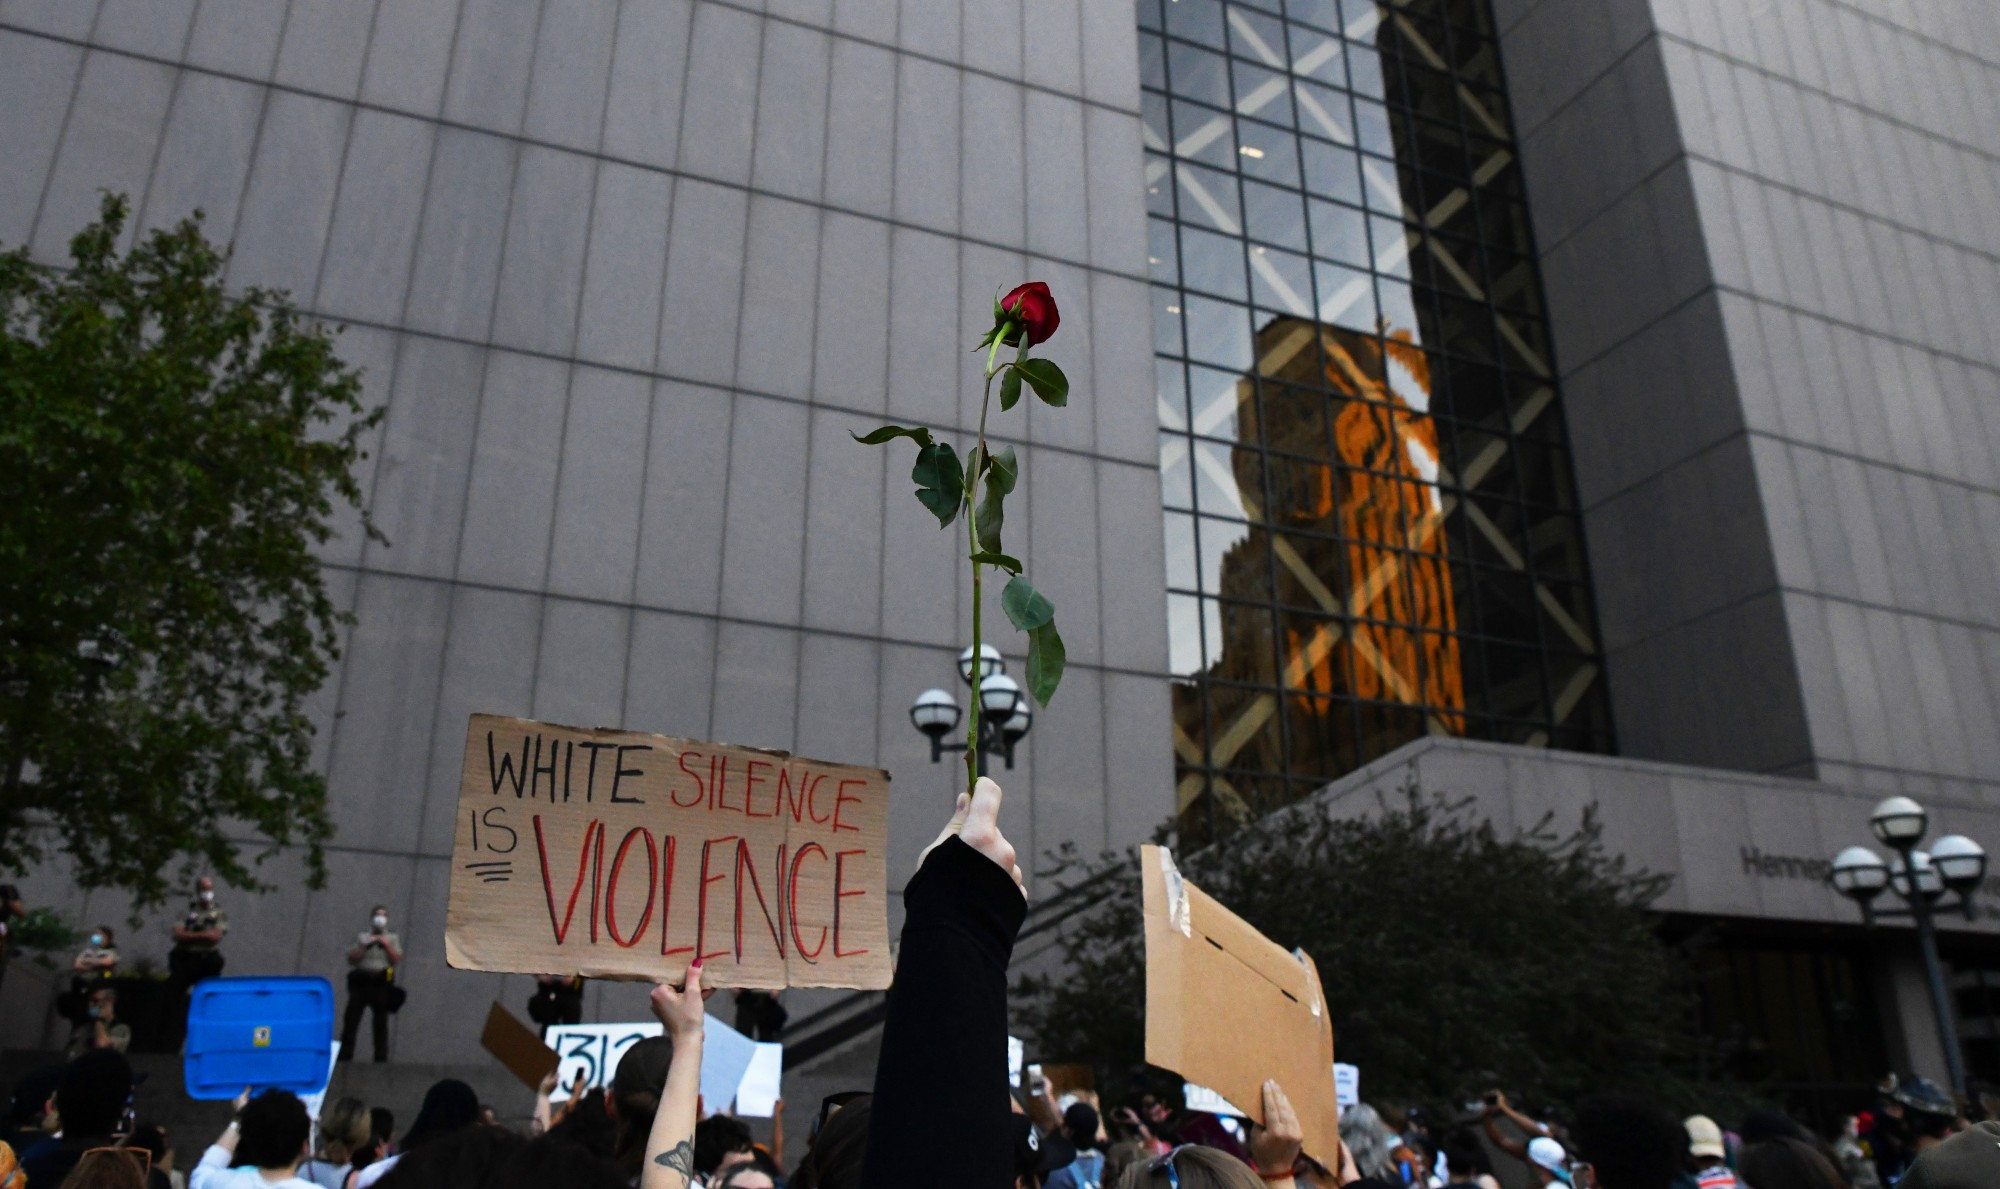 A demonstrator holds up a rose at the protest at Government Plaza in Minneapolis on Thursday, May 28.